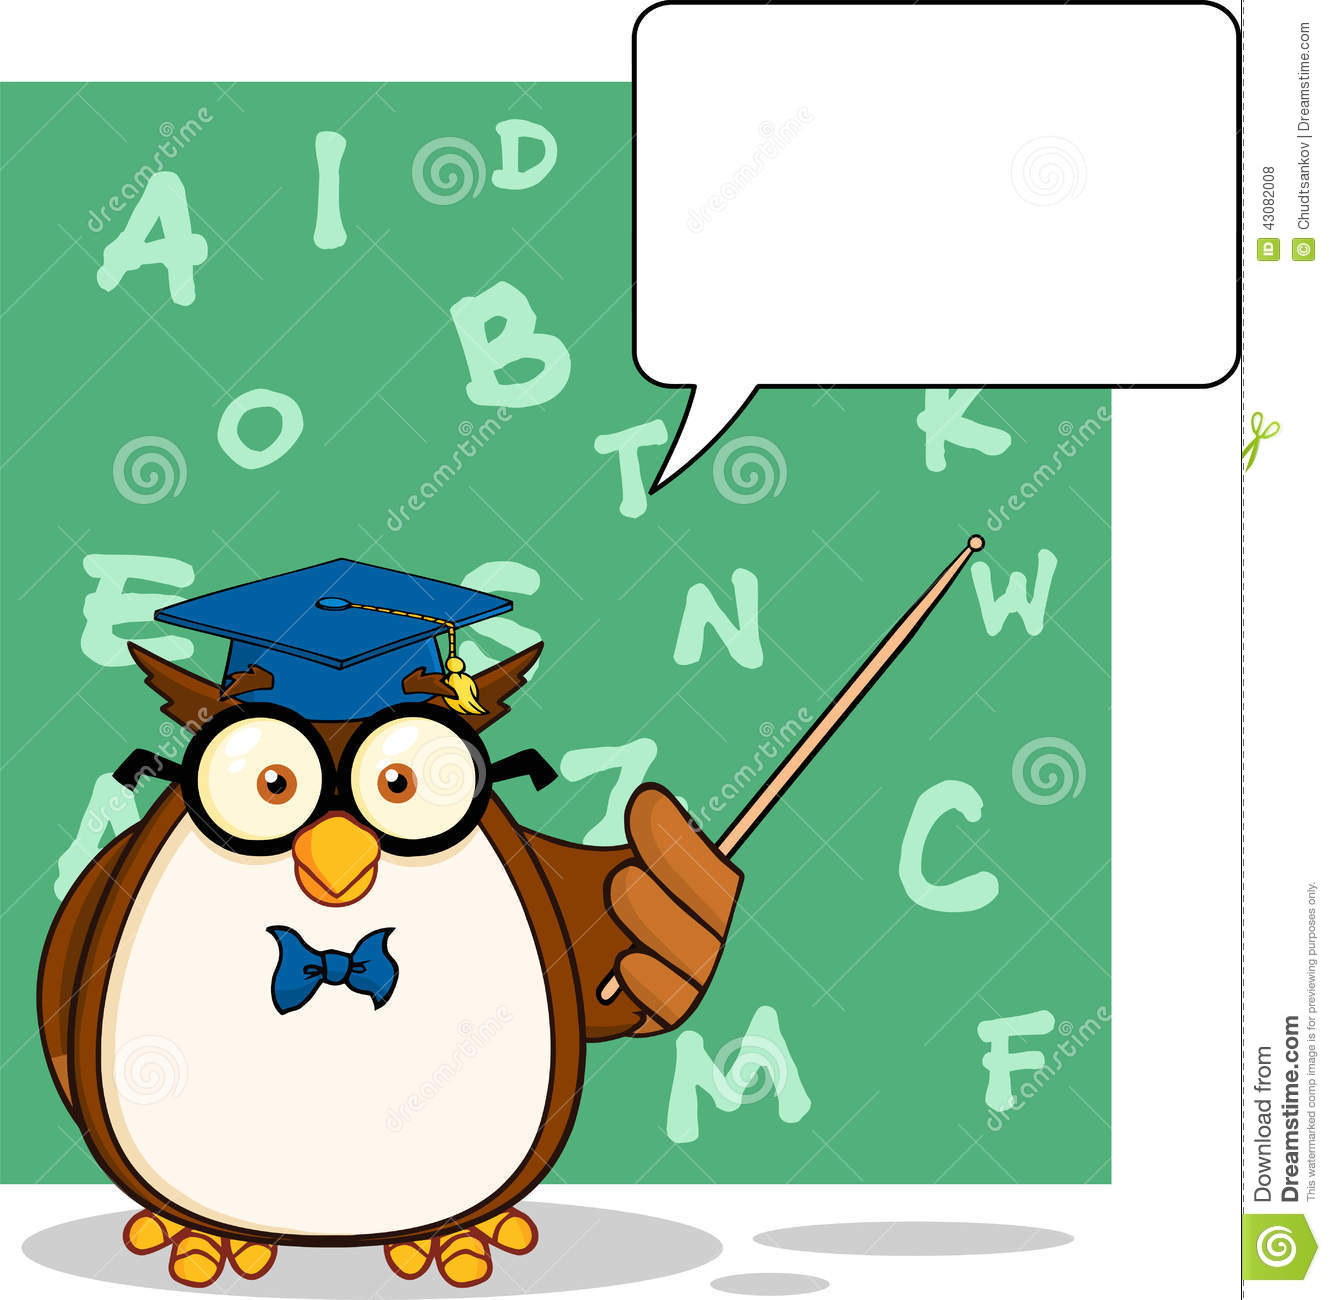 Stock Illustration  Wise Owl Teacher Cartoon Character With A Speech    Owl Teacher Cartoon